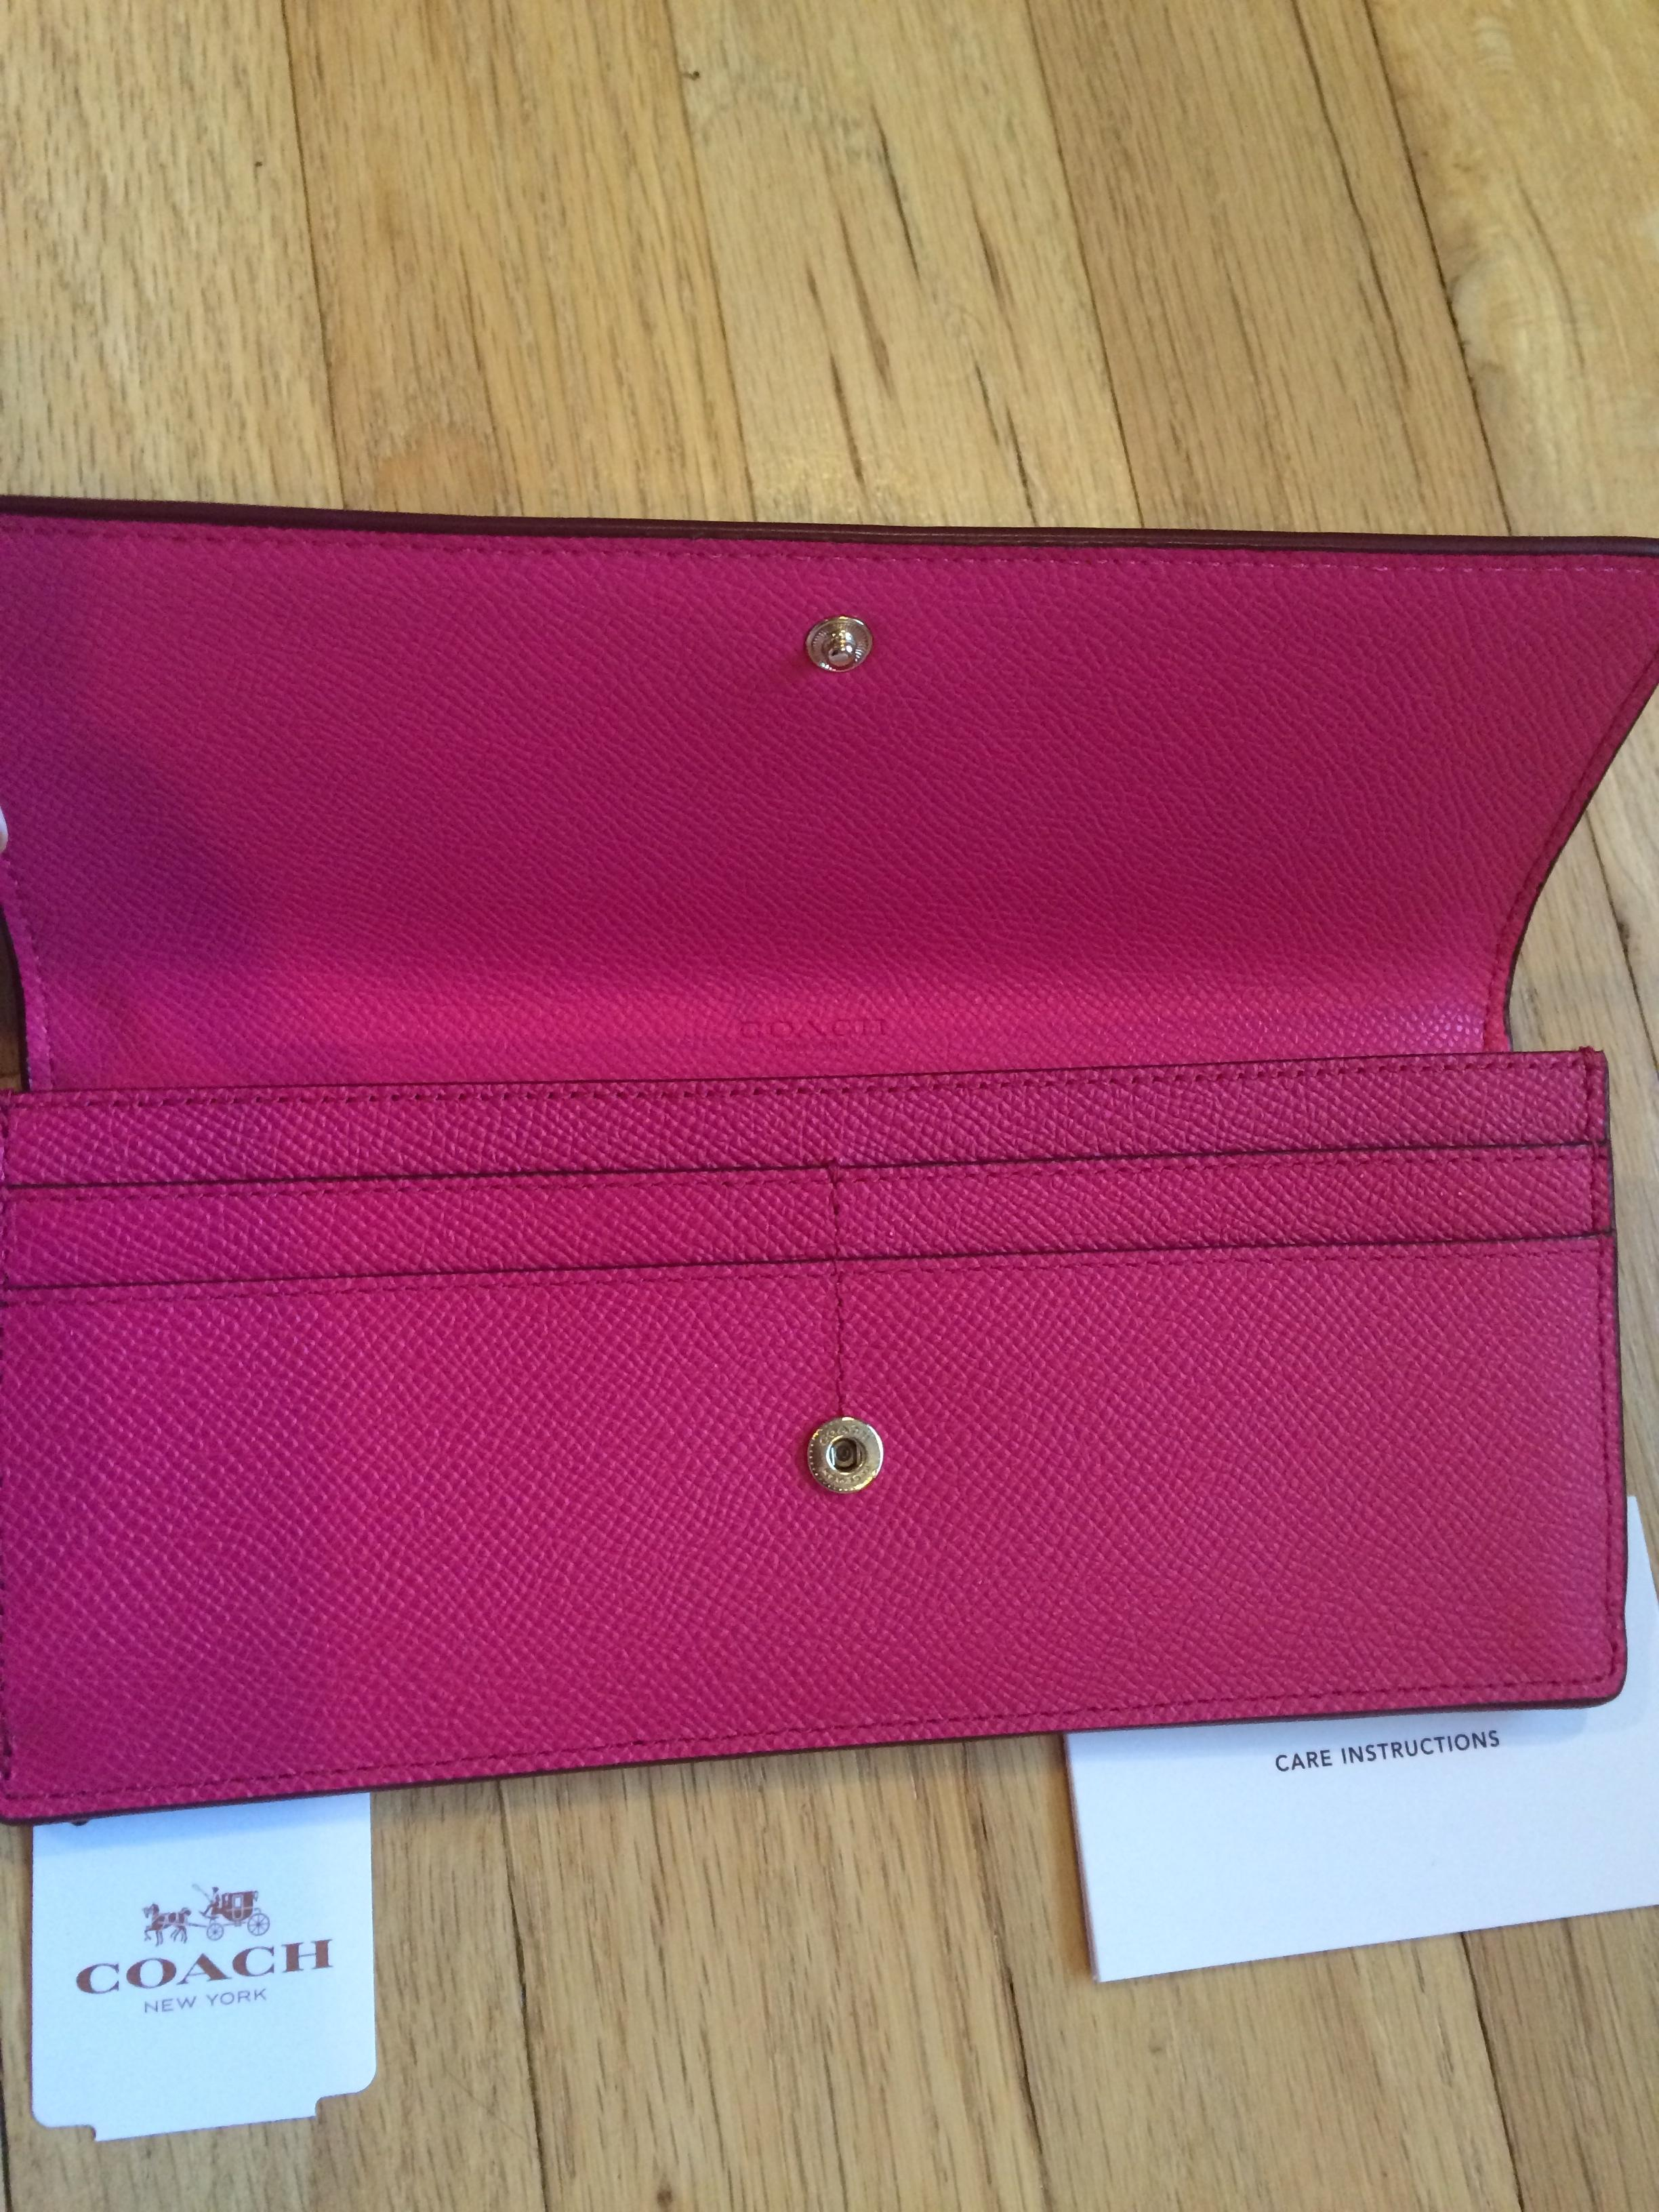 6bc7a44e0ed5 ... ireland coach pink ruby ruby stunning soft in wallet 65084 a0ffb